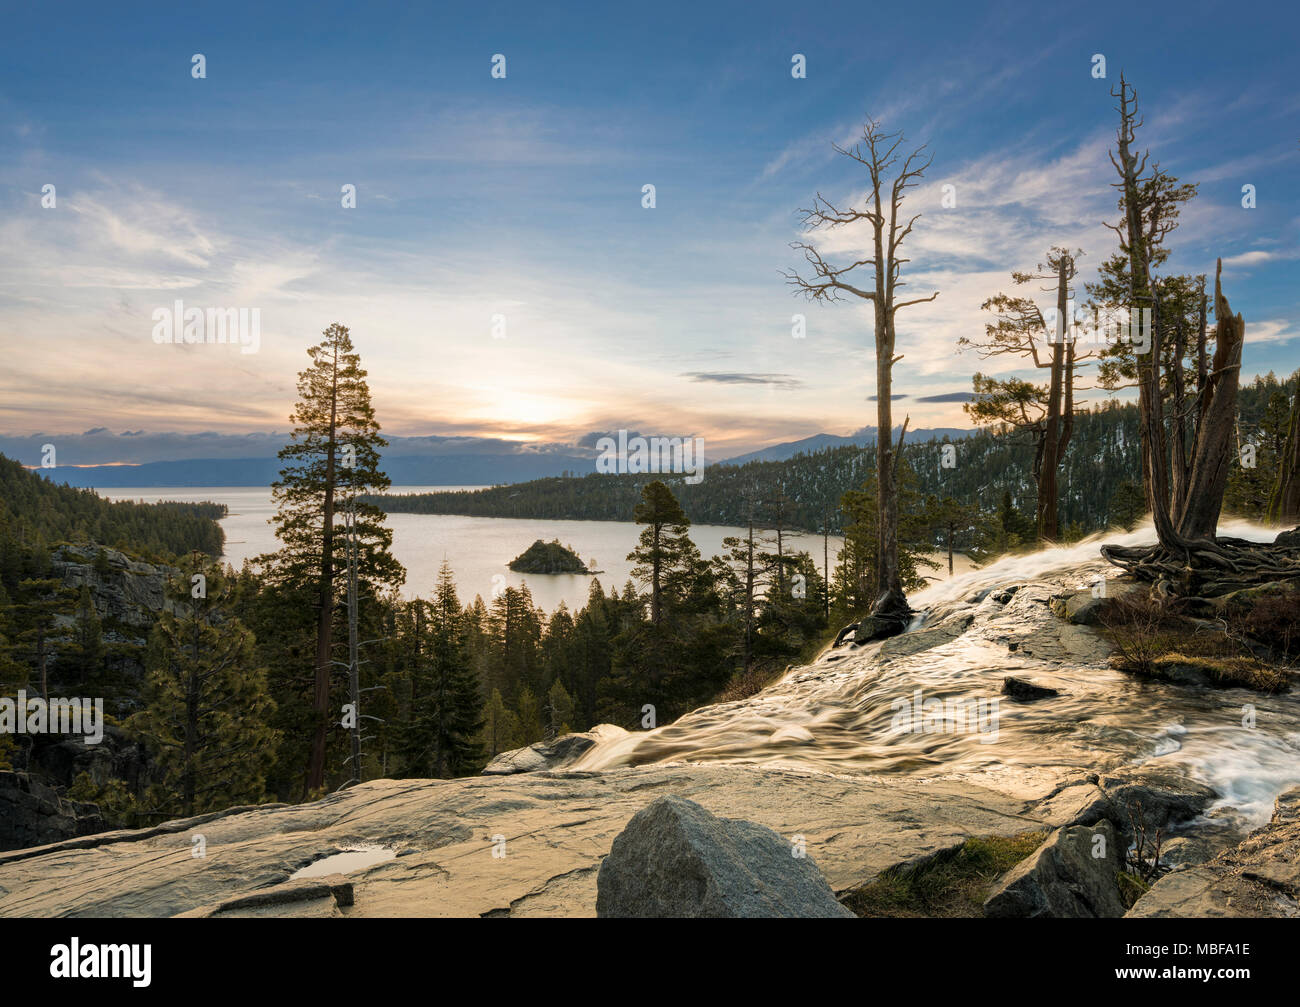 Sunset at Emerald Bay on Lake Tahoe from the top of Lower Eagle Falls, Sierra Nevada, California, USA - Stock Image